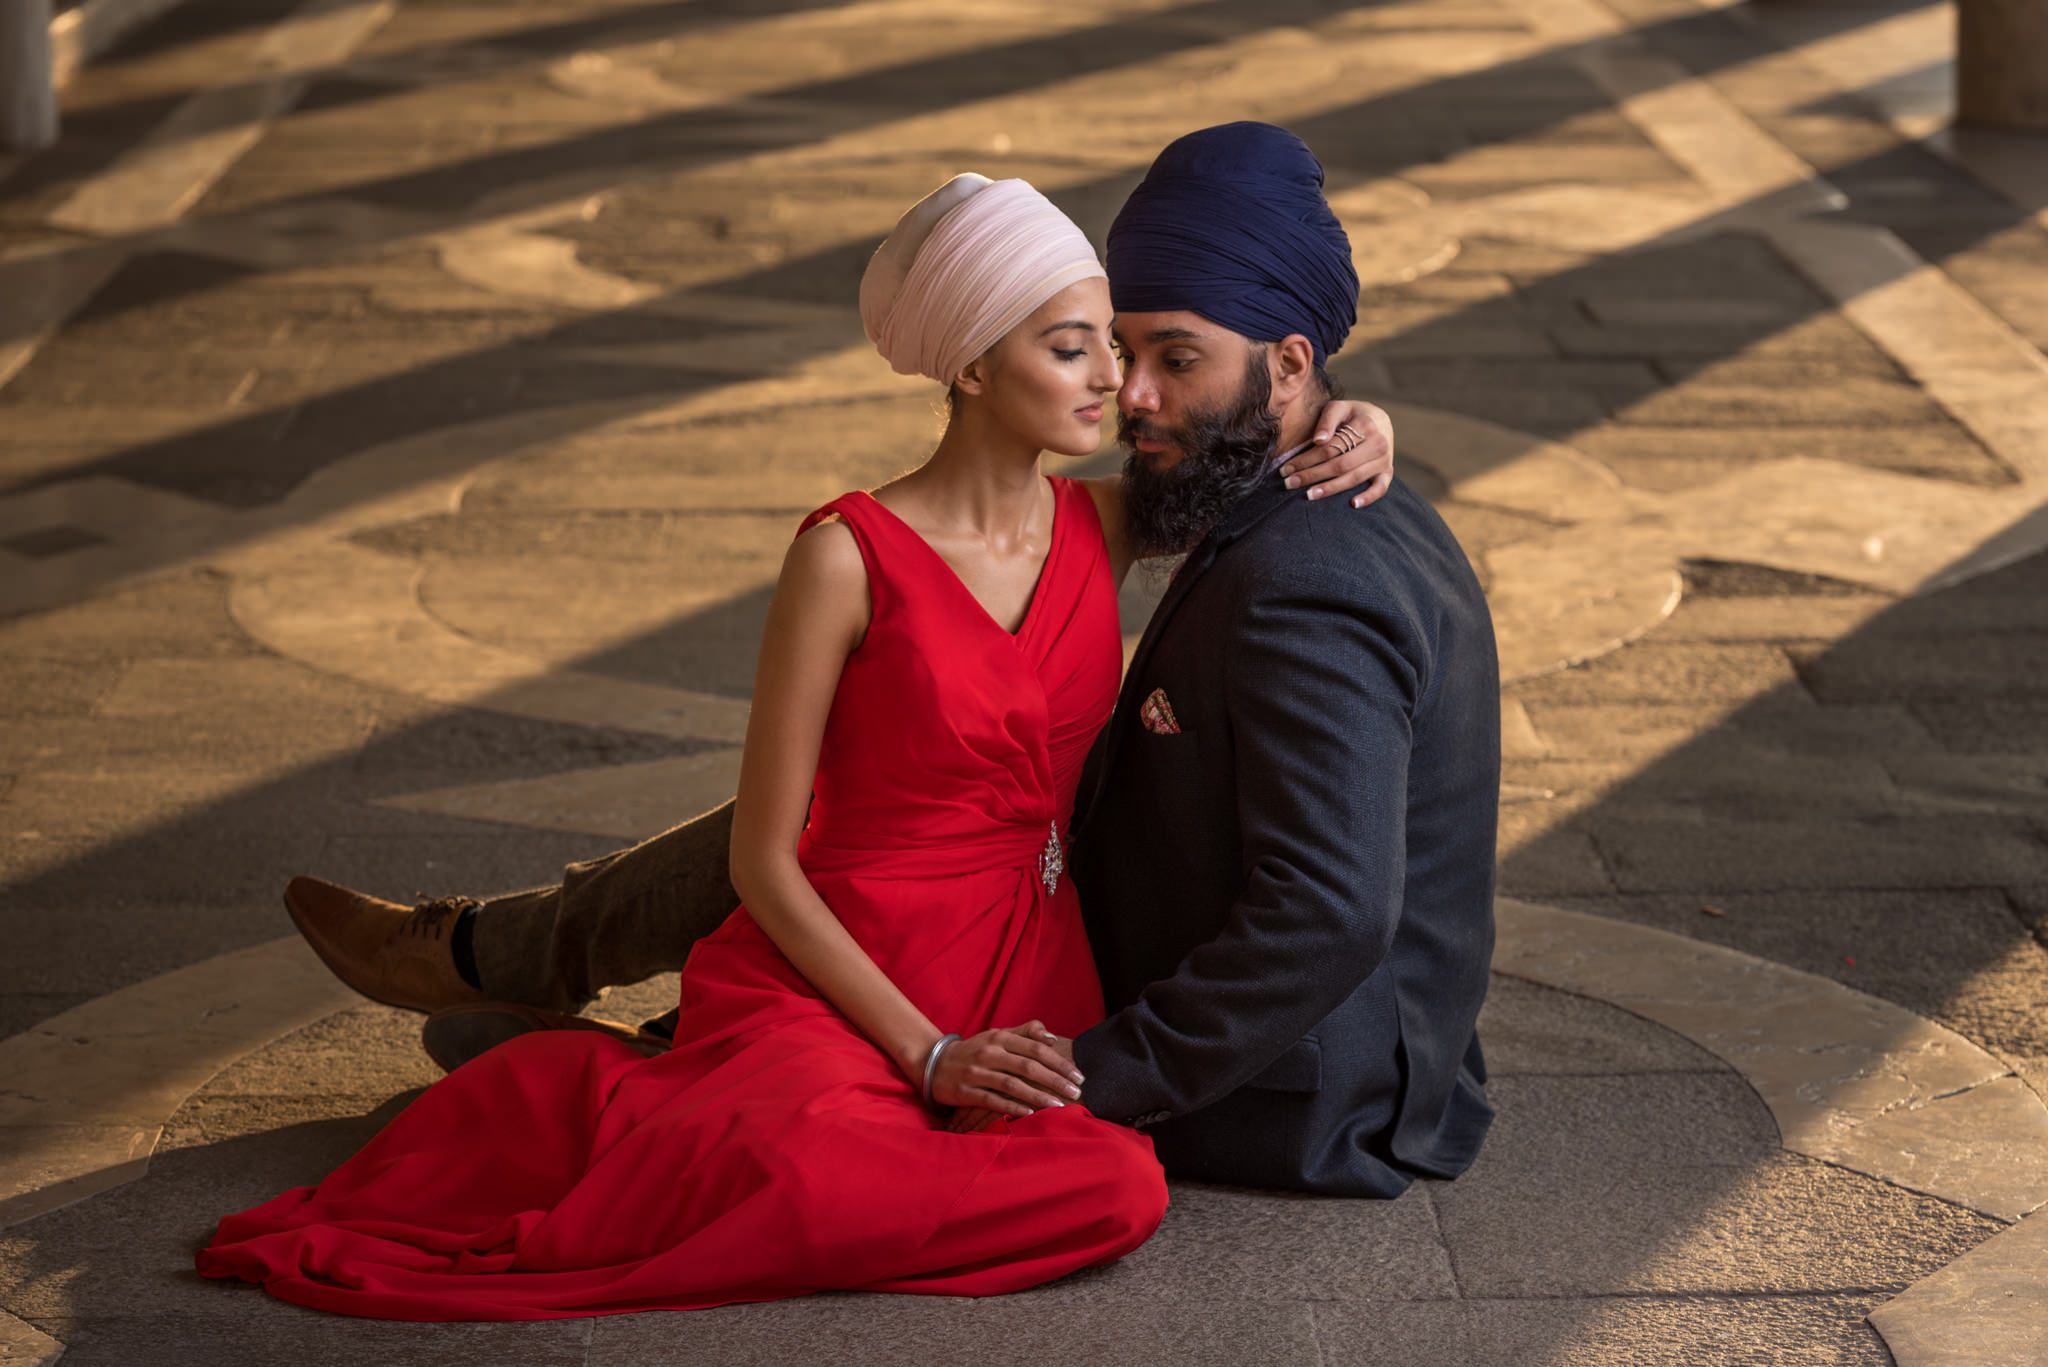 destination pre wedding shoot italy sikh wedding photography-25.jpg